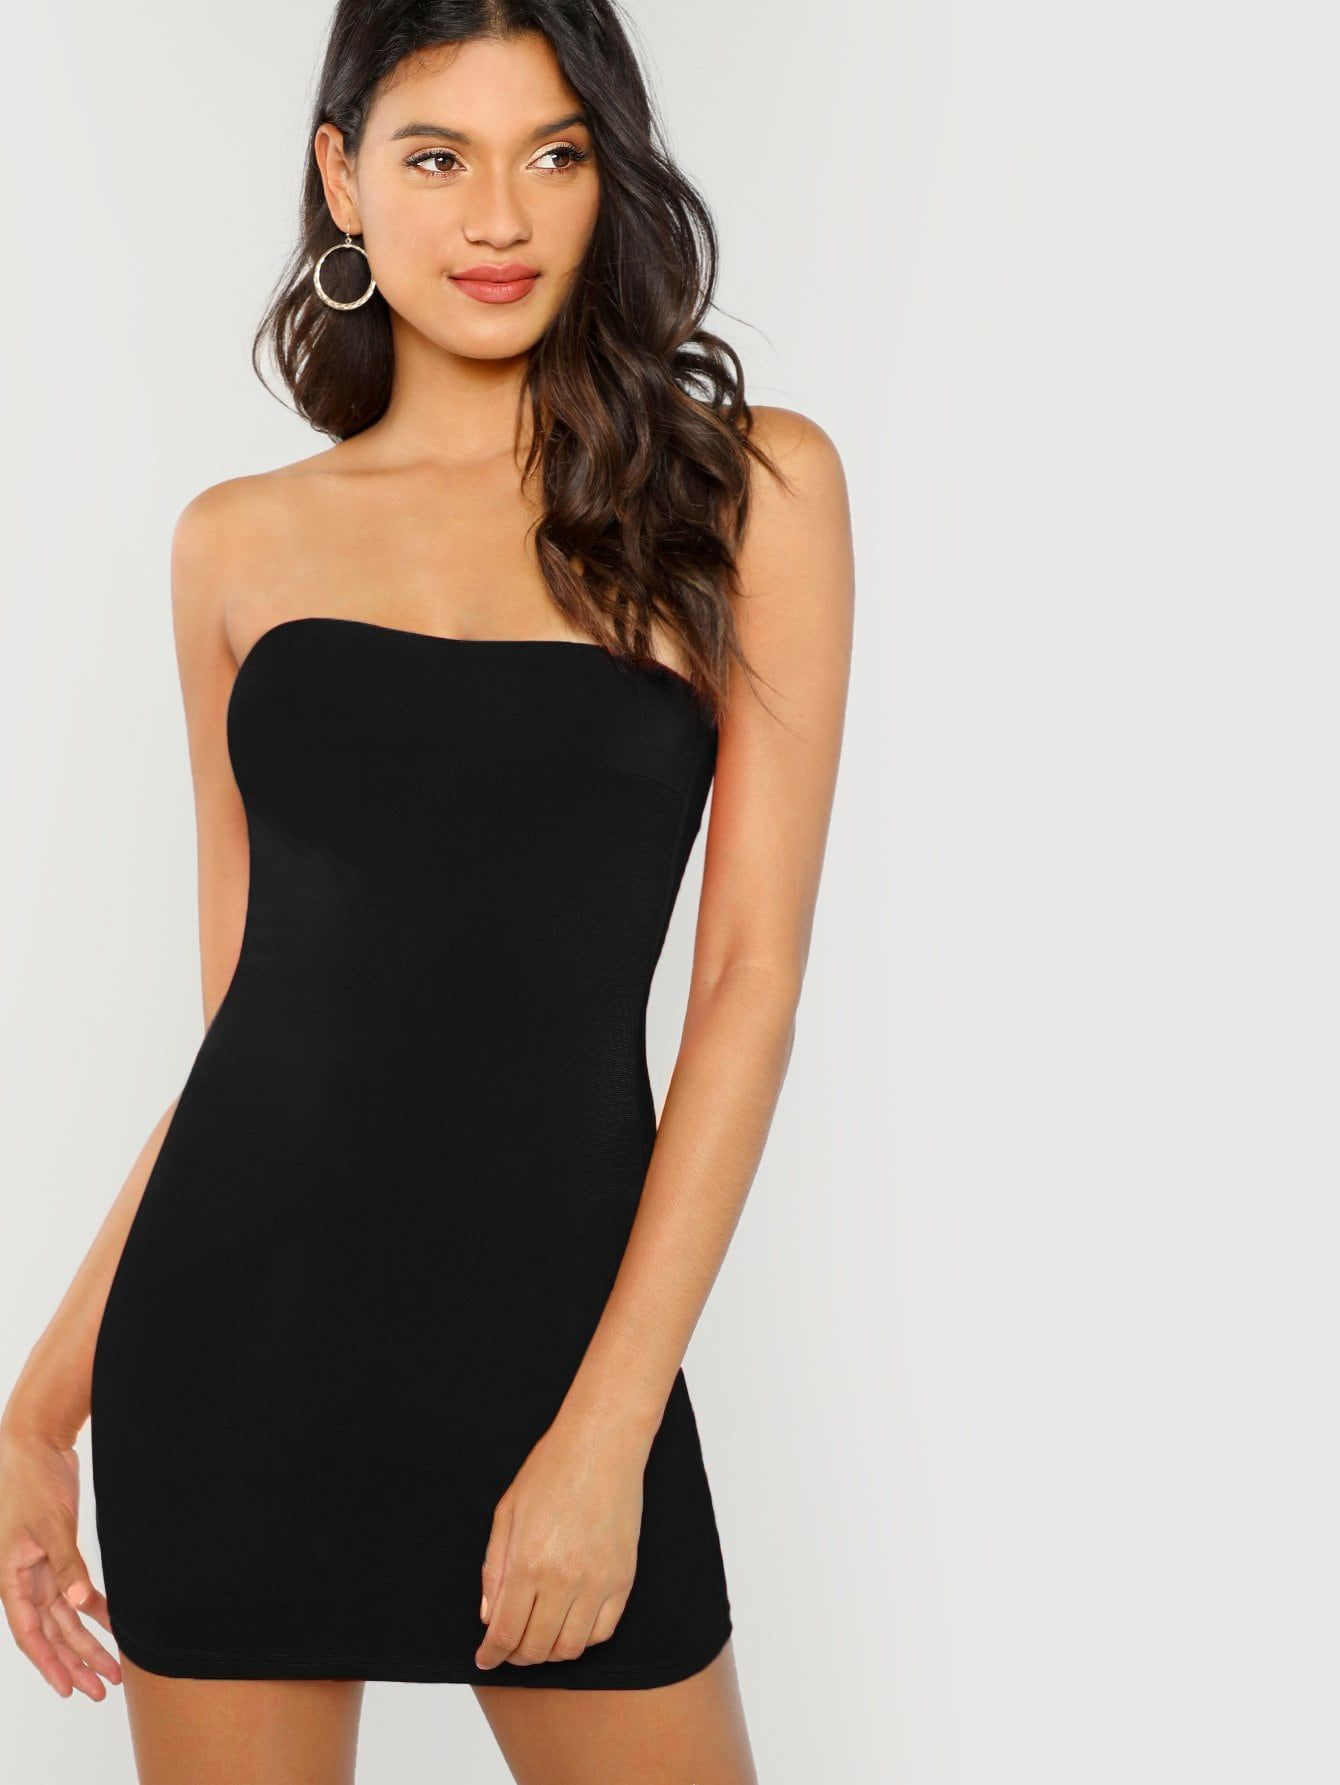 26558bbf93 Party and Sexy Tube Plain Bodycon Strapless Sleeveless Natural Black Short  Length Form Fitting Bandeau Dress